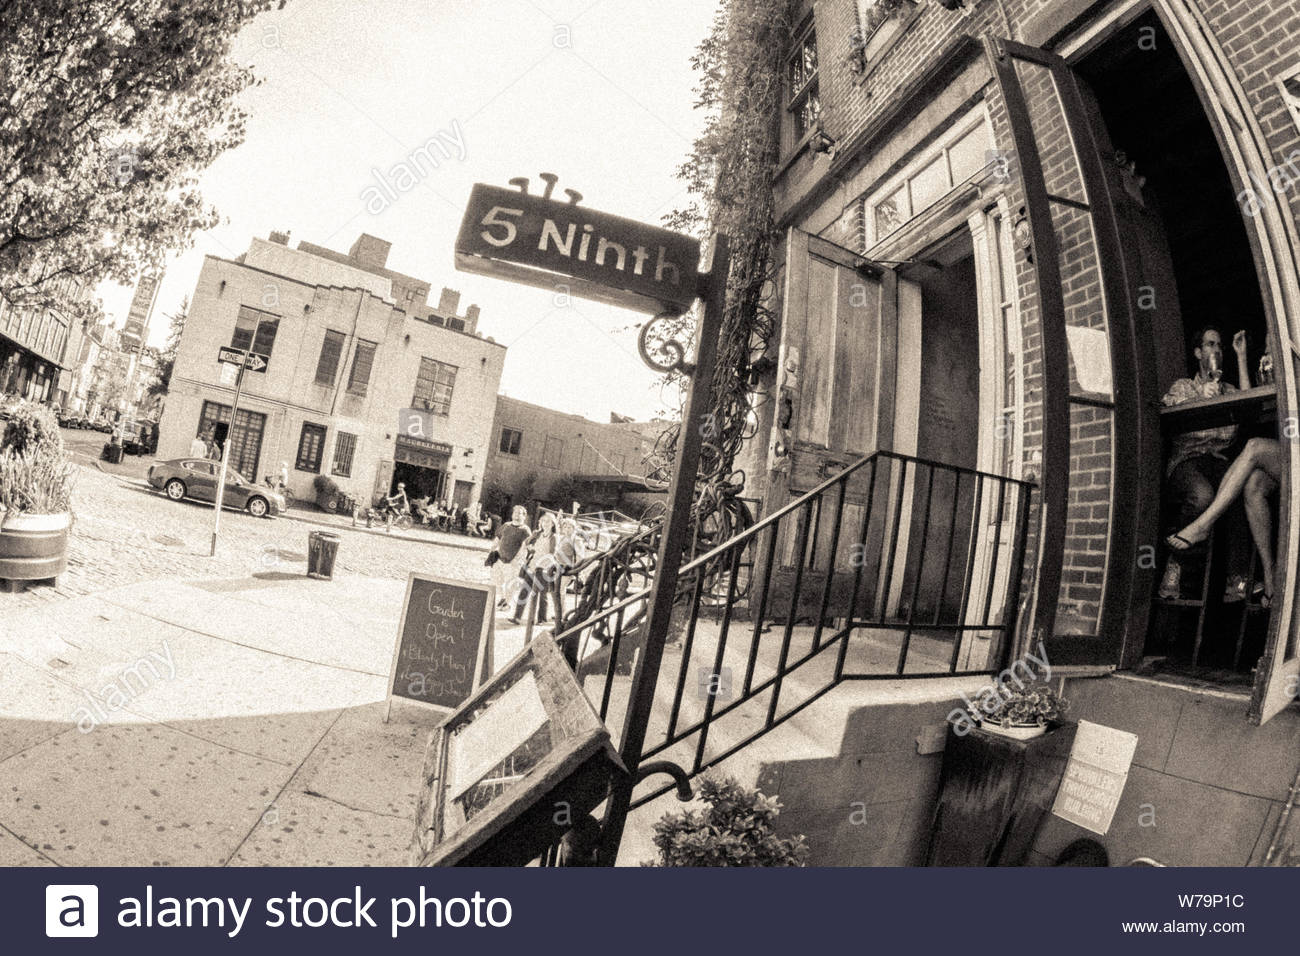 New York, United States - April 21, 2012 : The hood of north